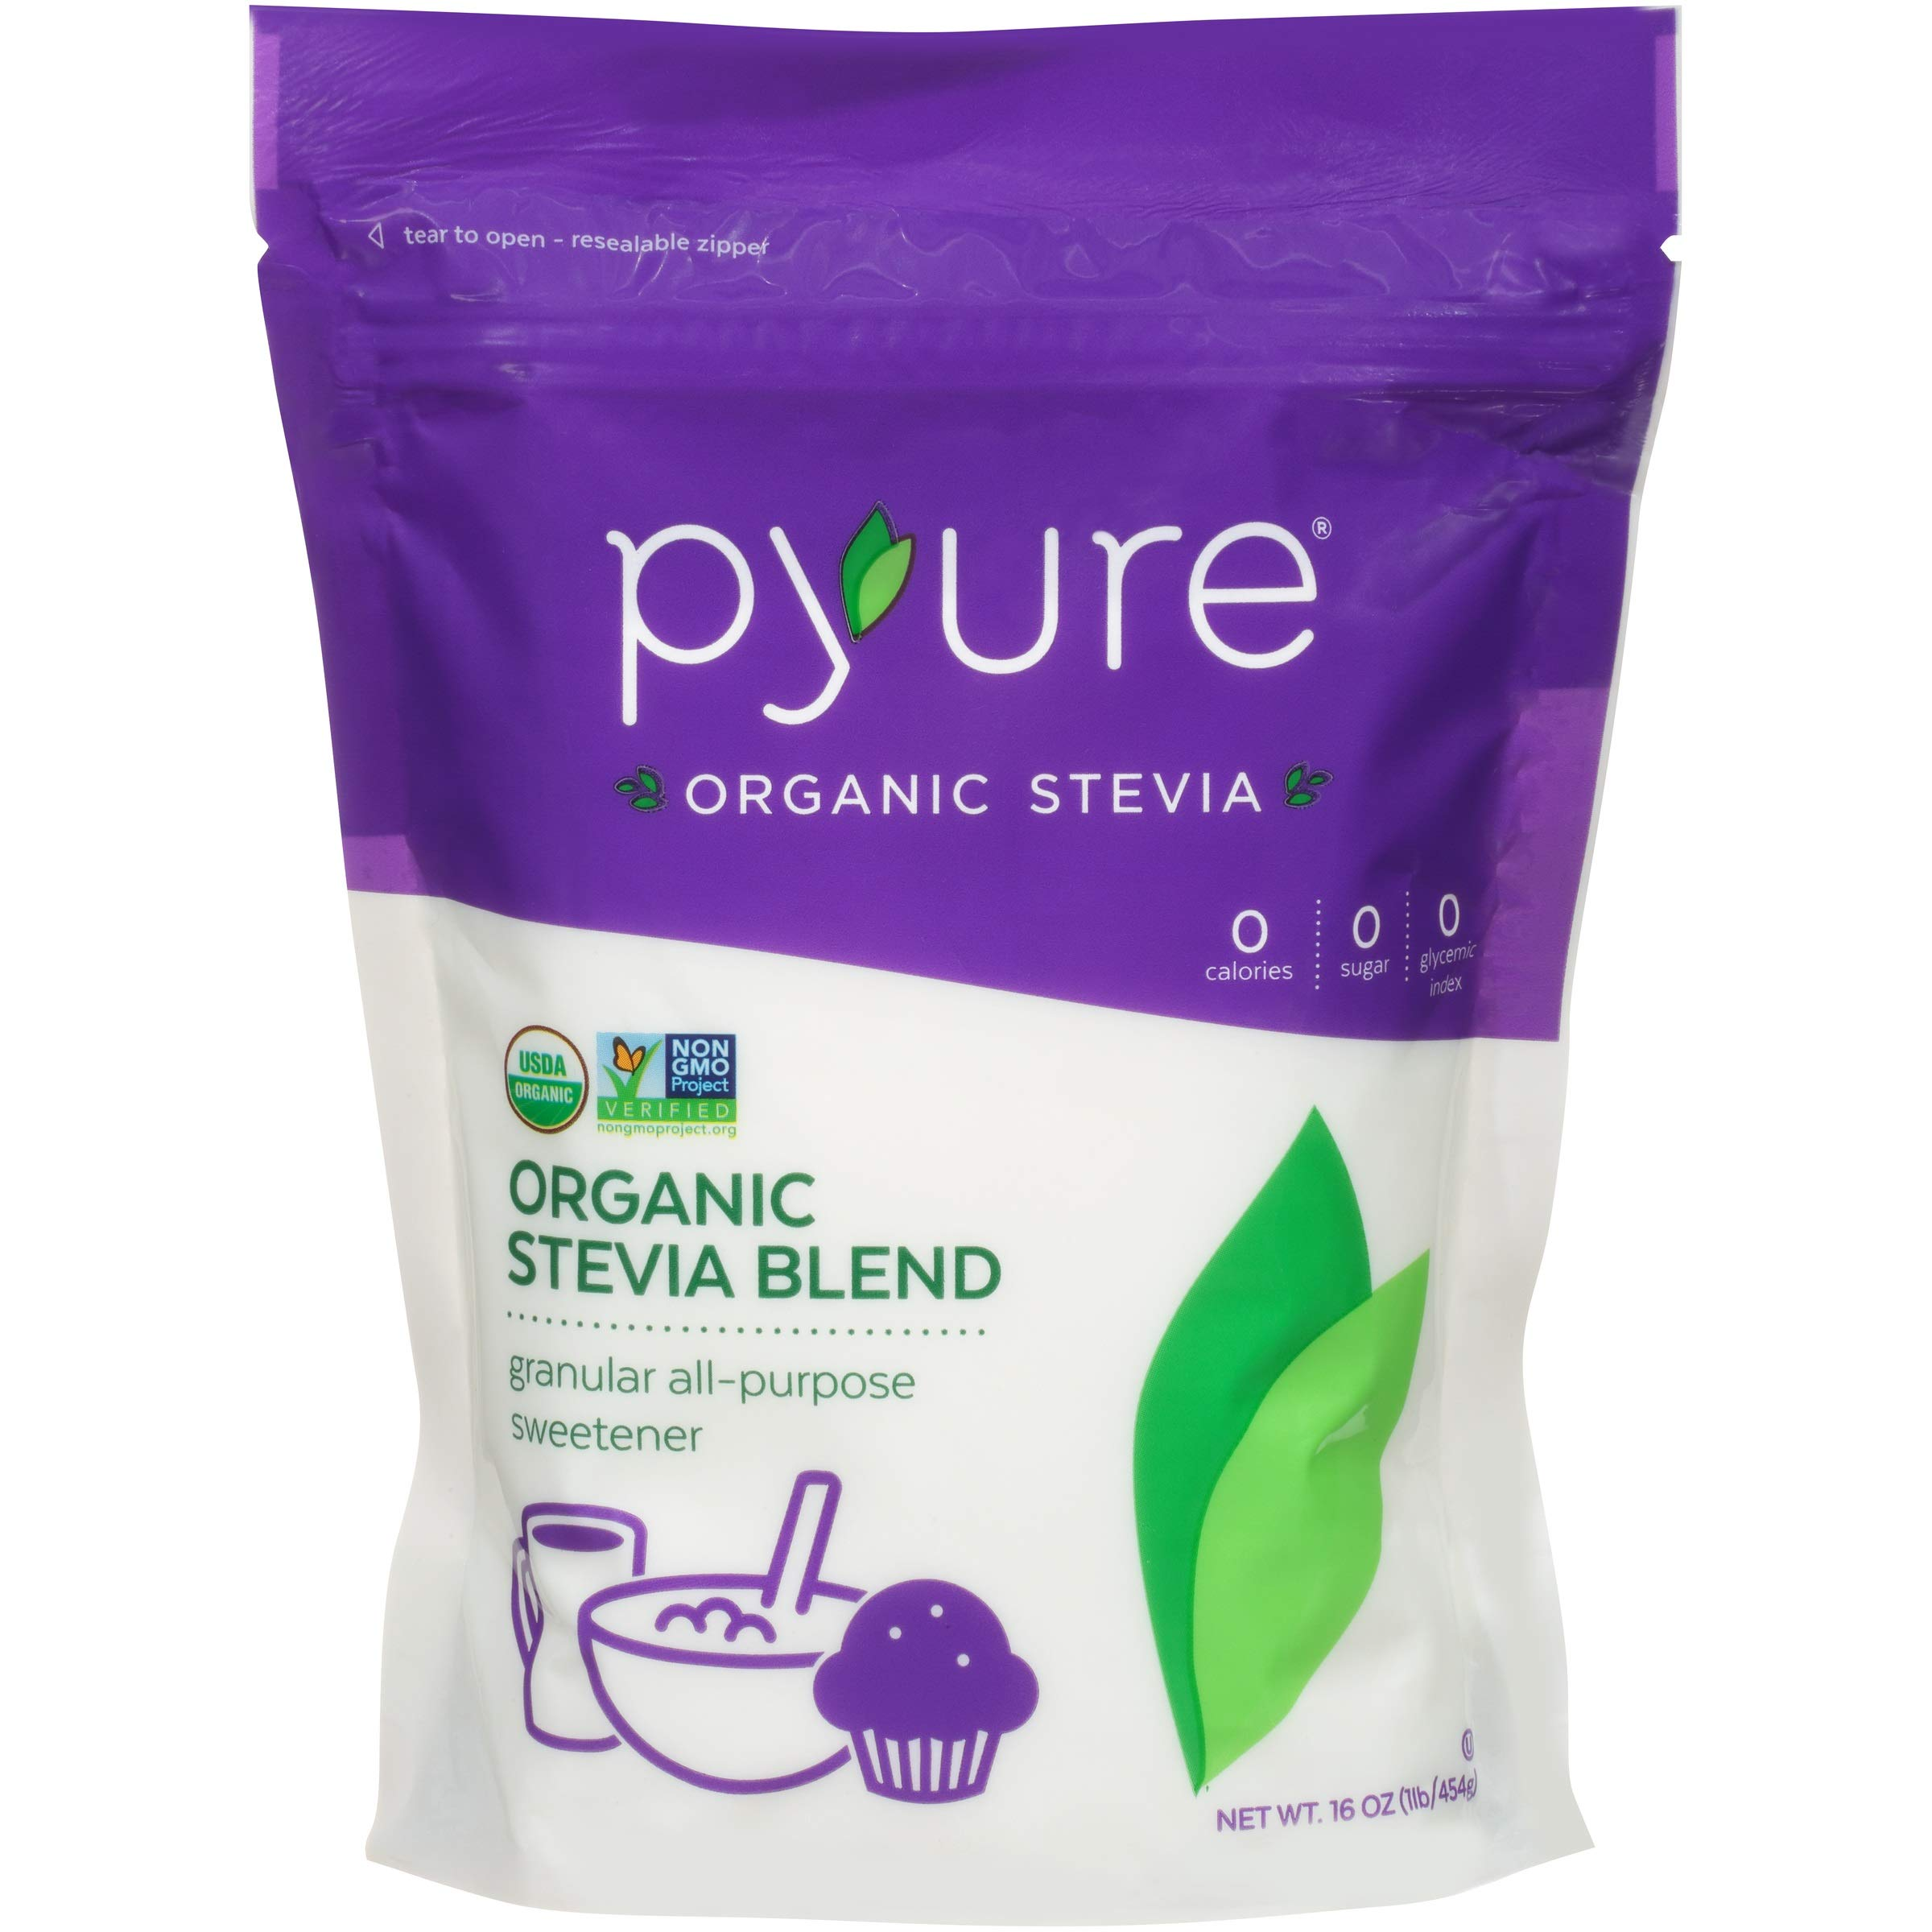 Pyure Organic All-Purpose Blend Stevia Sweetener, 1 lb (16 oz) by Pyure (Image #4)